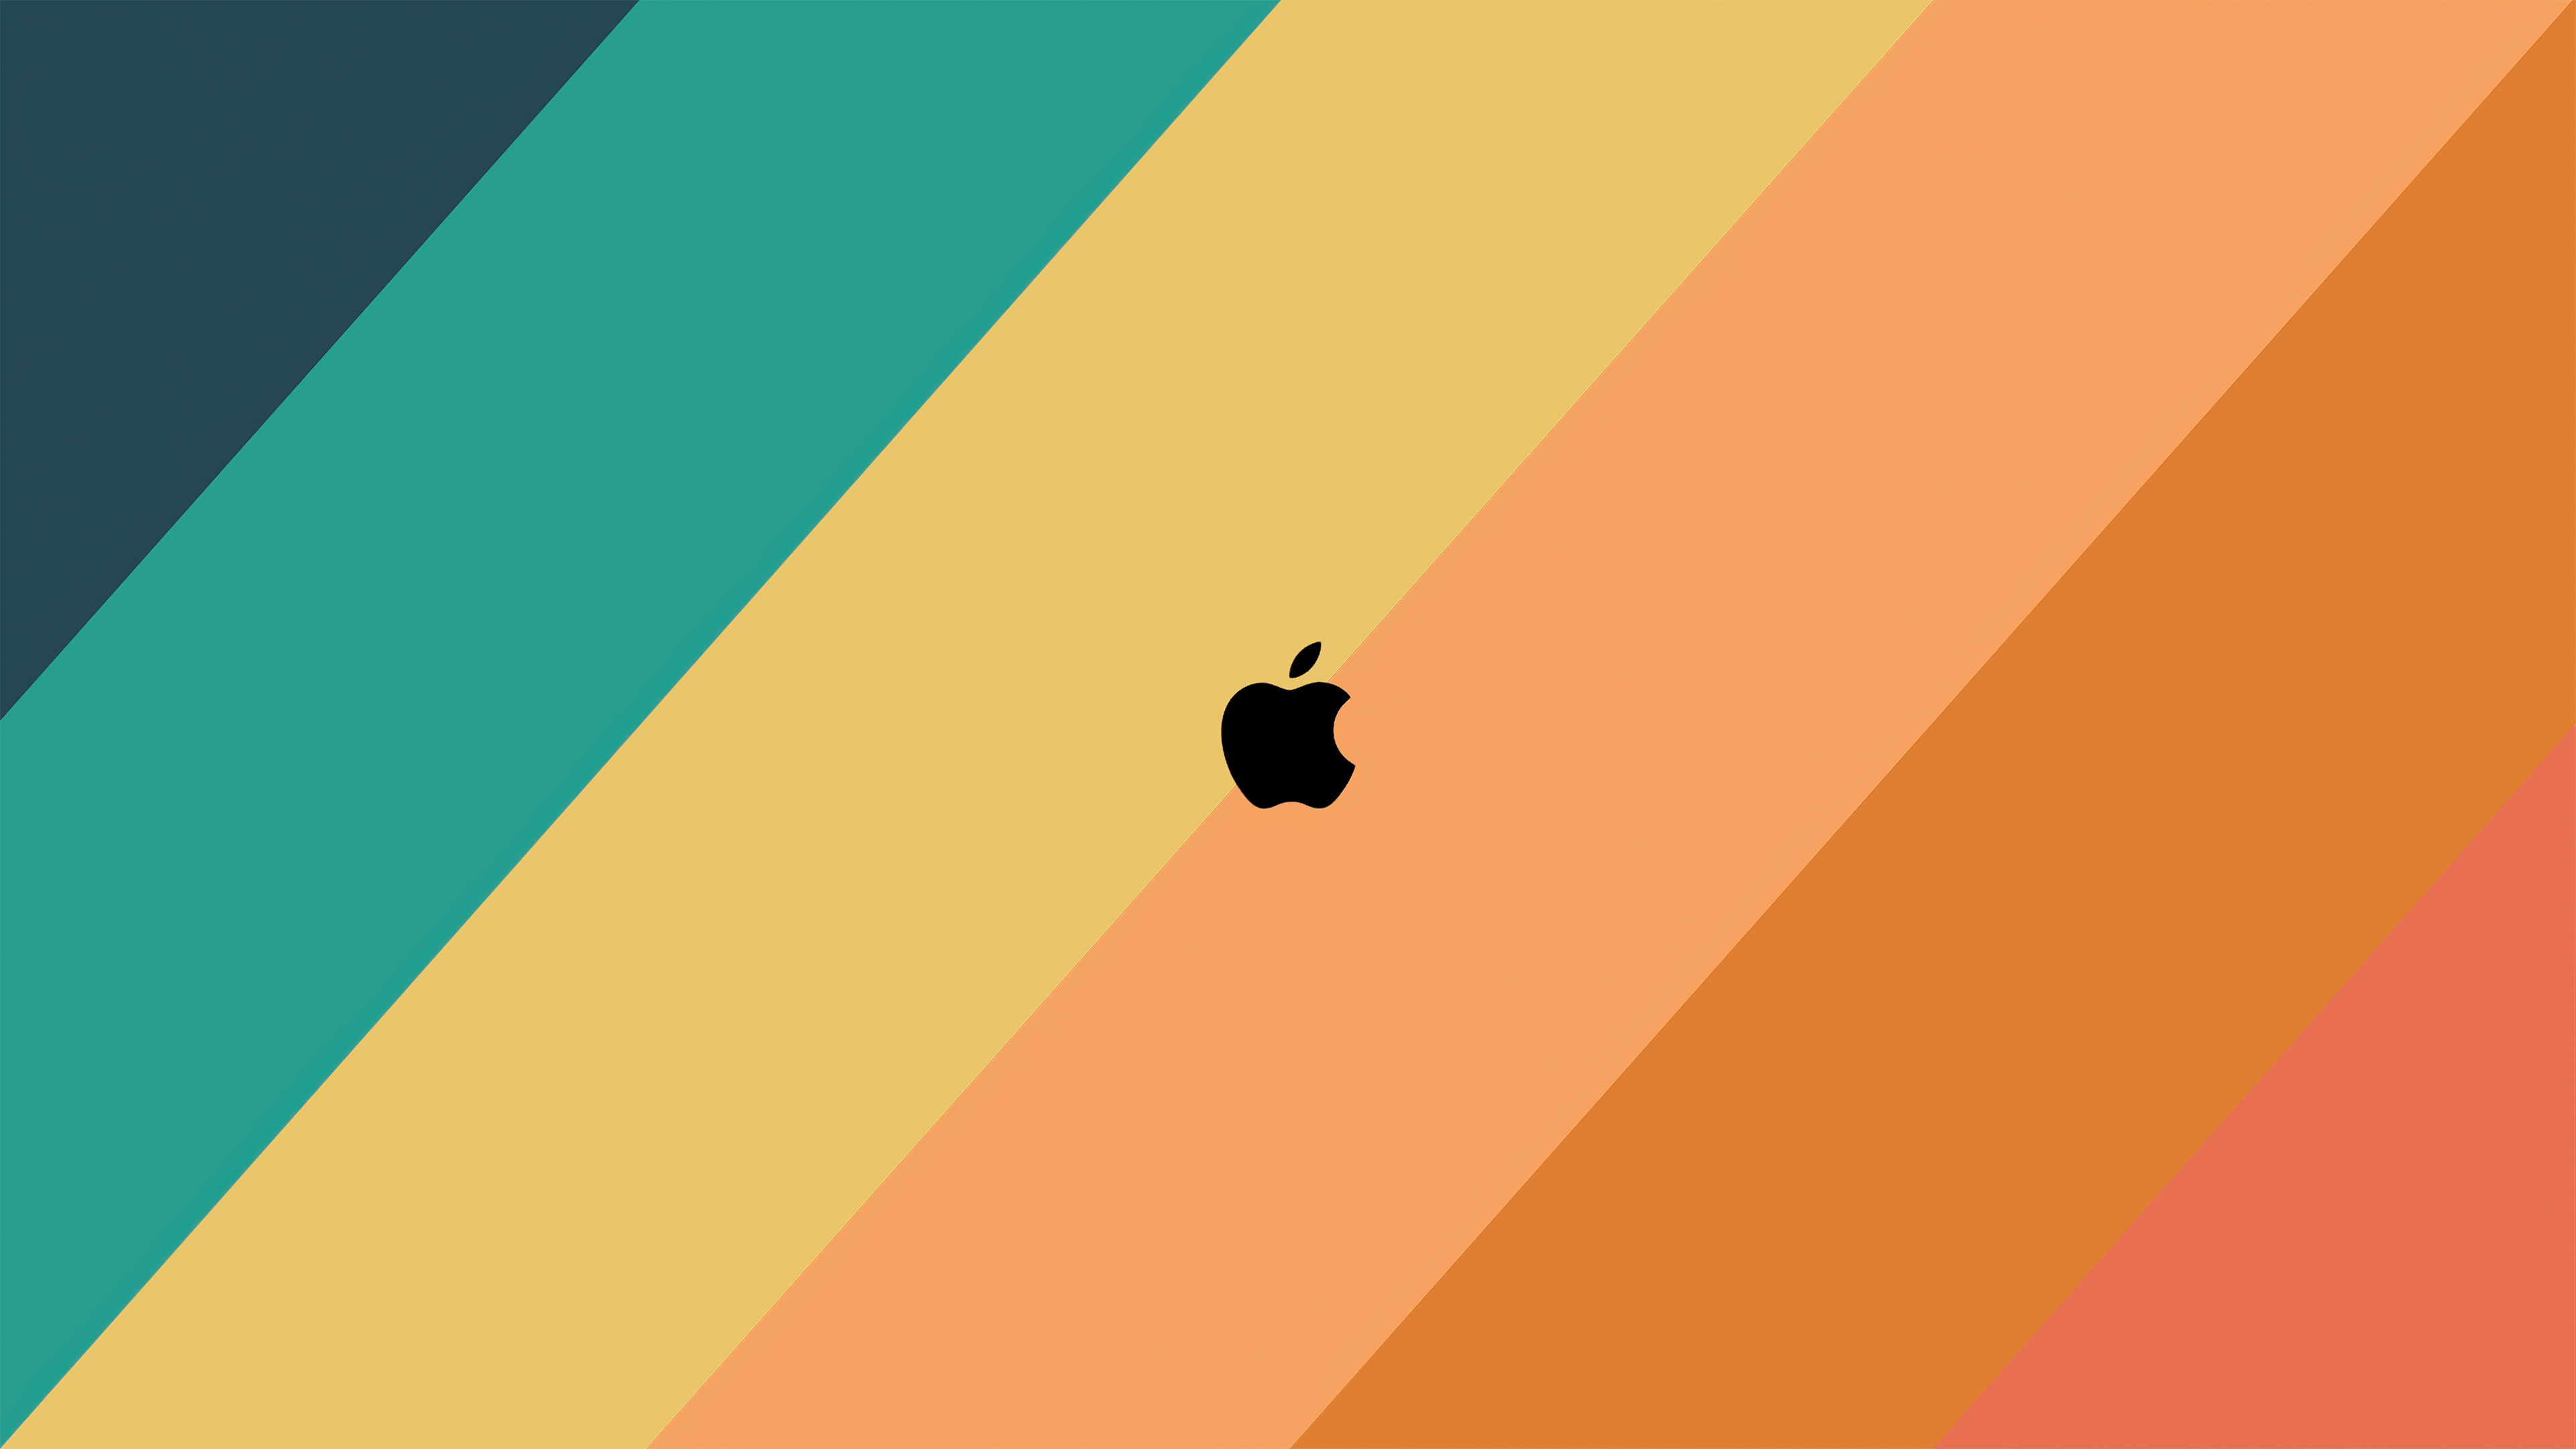 2880x1800 Apple Inc Minimal Macbook Pro Retina Hd 4k Wallpapers Images Backgrounds Photos And Pictures